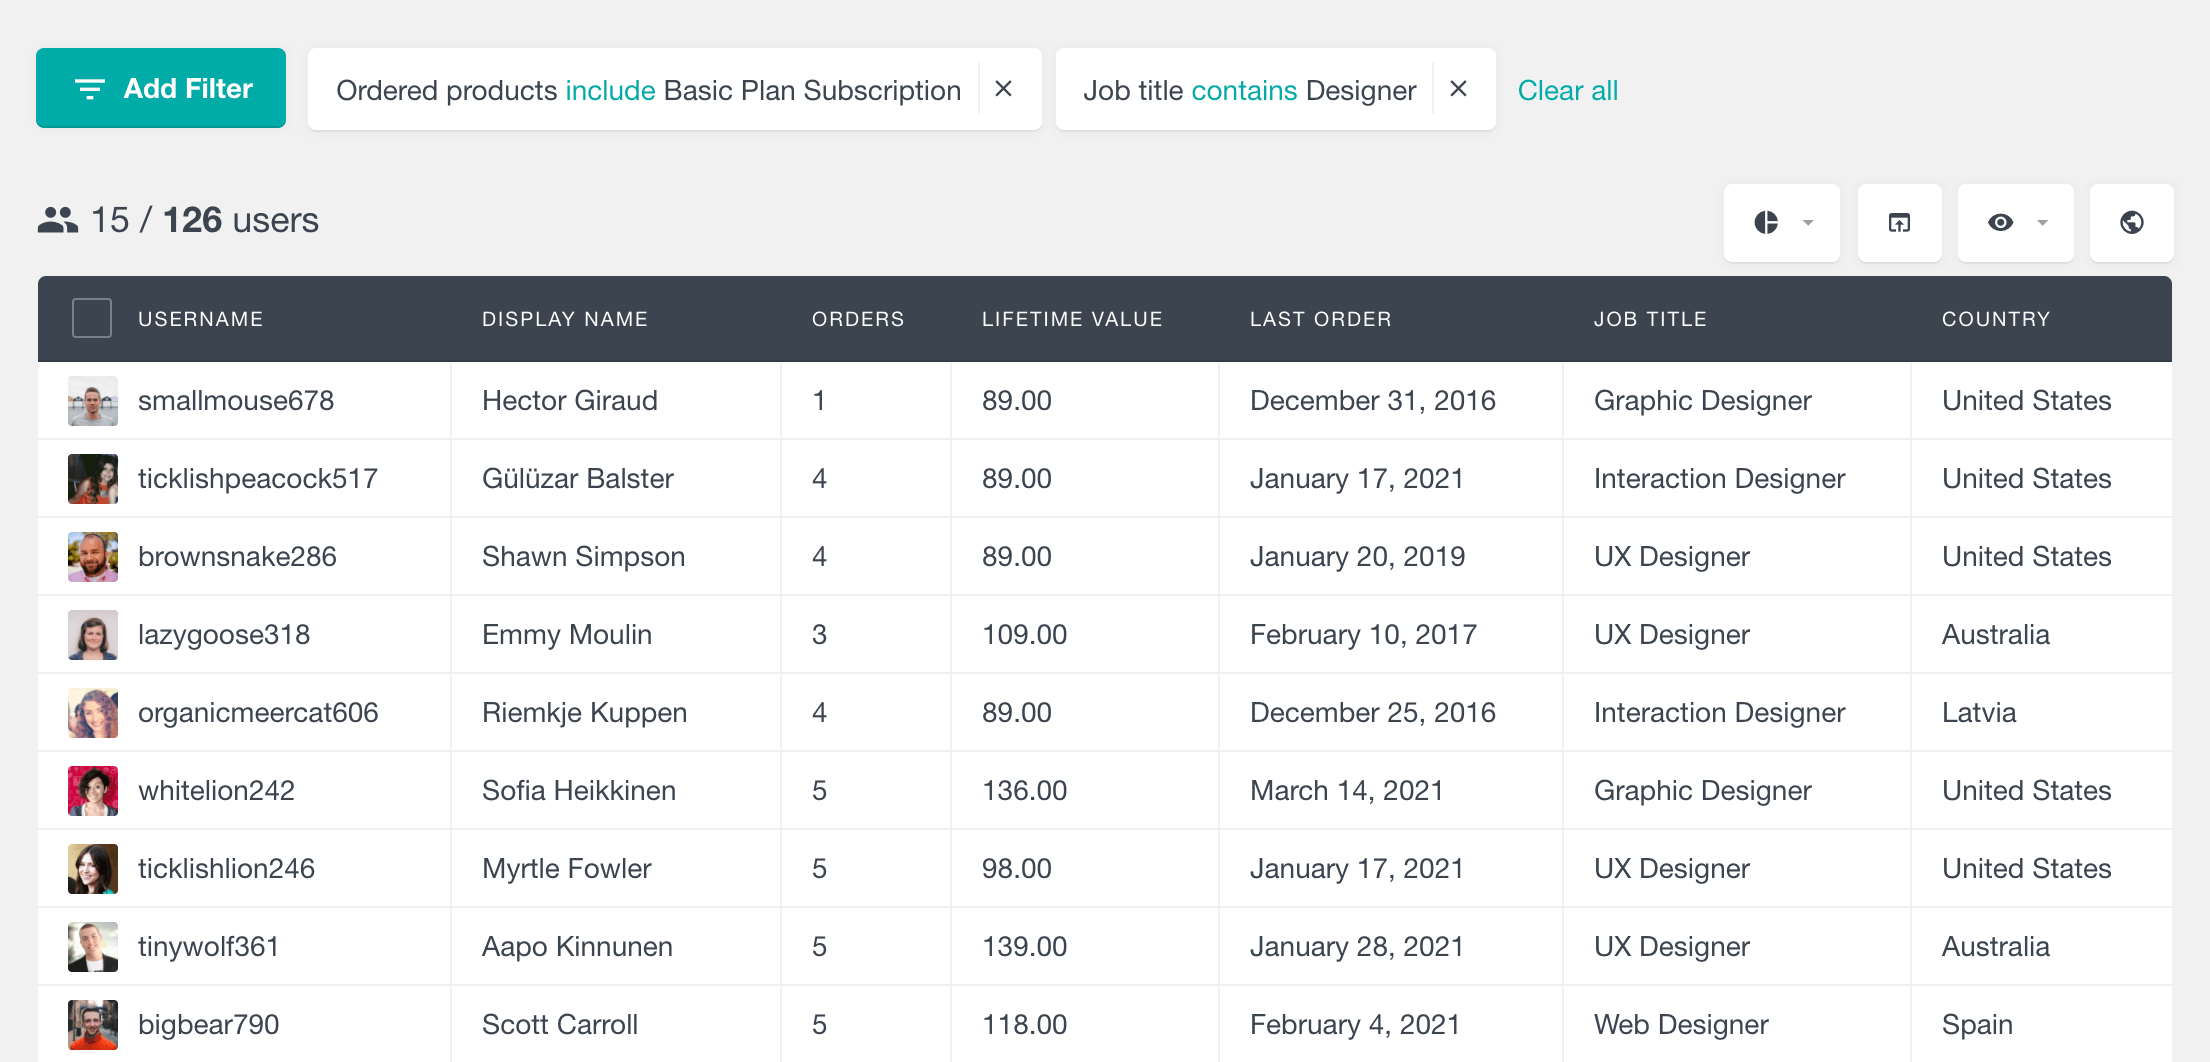 Filter service customers based on their occupation and other attributes